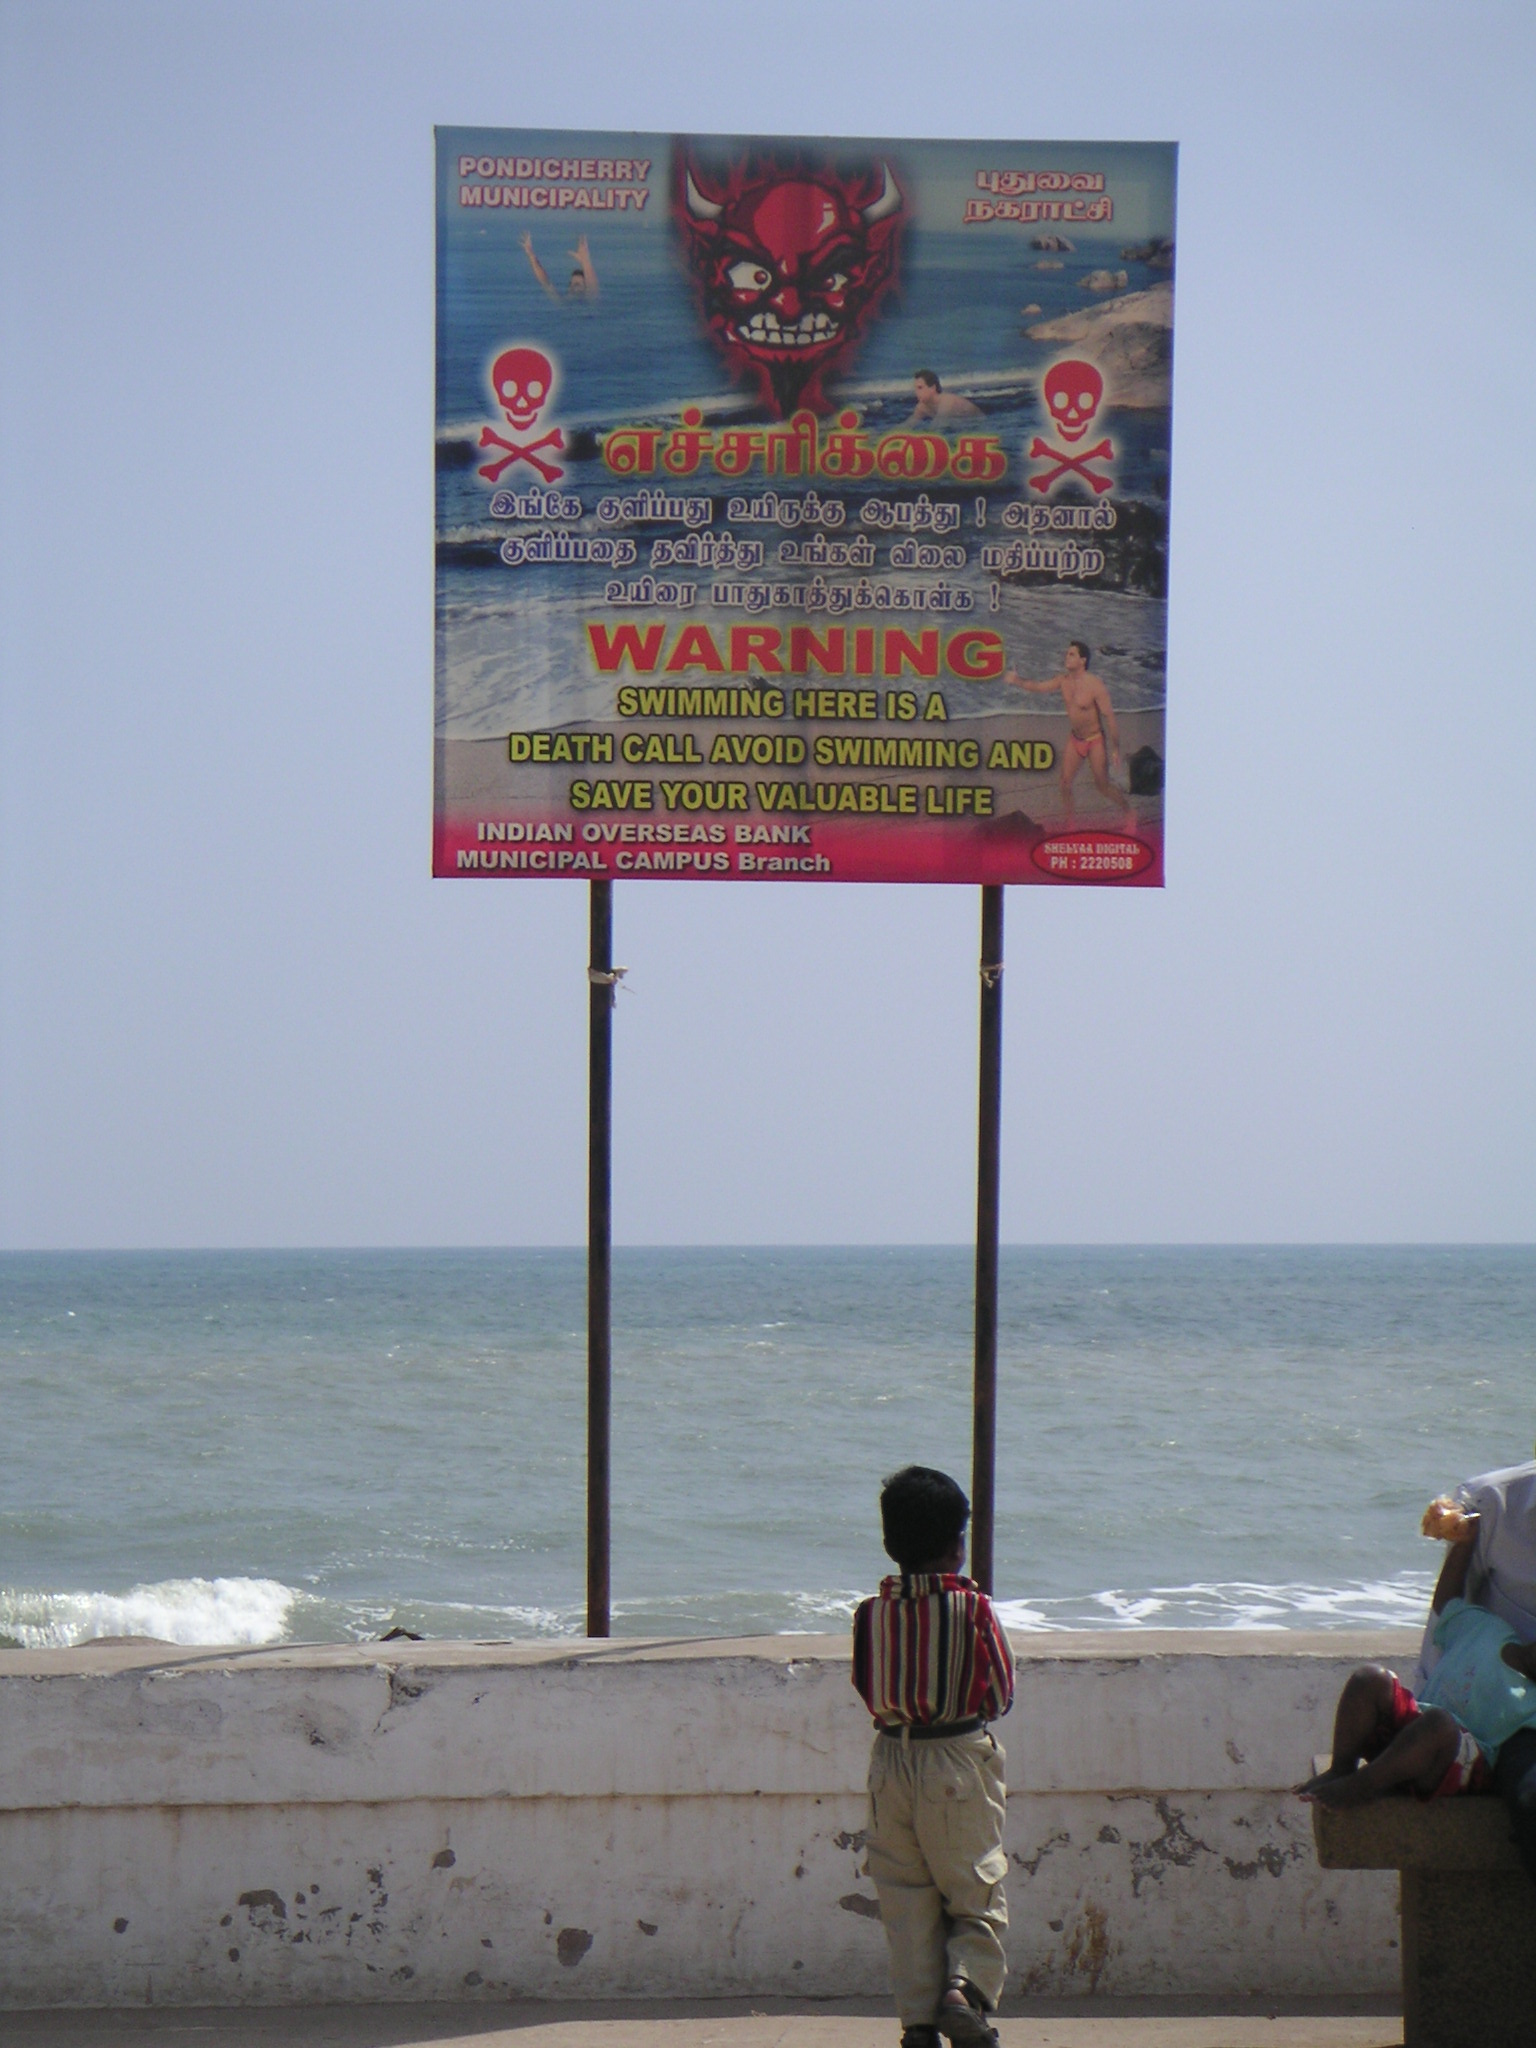 Caution in Pondicherry